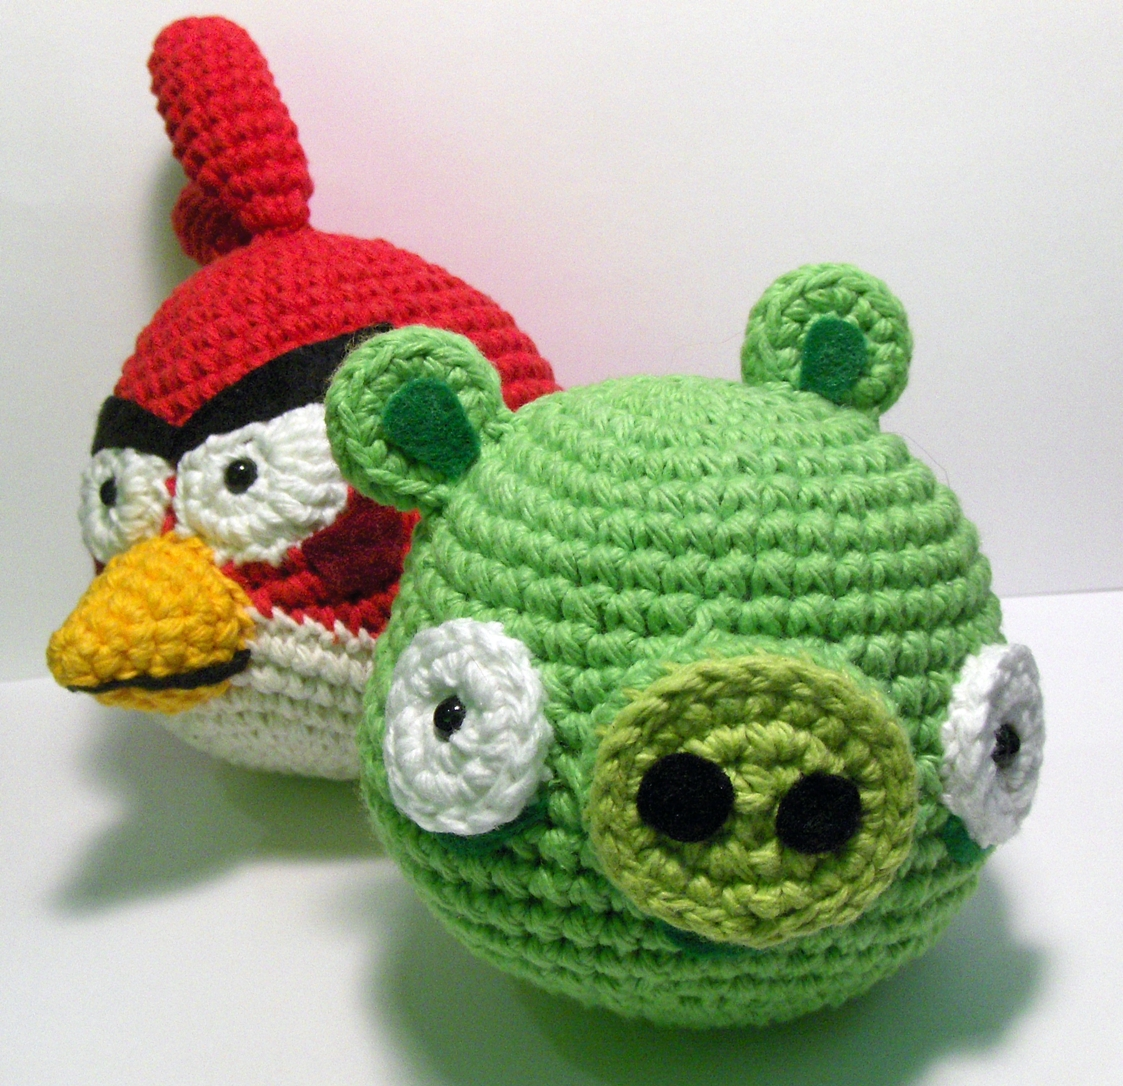 Free Amigurumi Ball Pattern : Nerdigurumi - Free Amigurumi Crochet Patterns with love ...